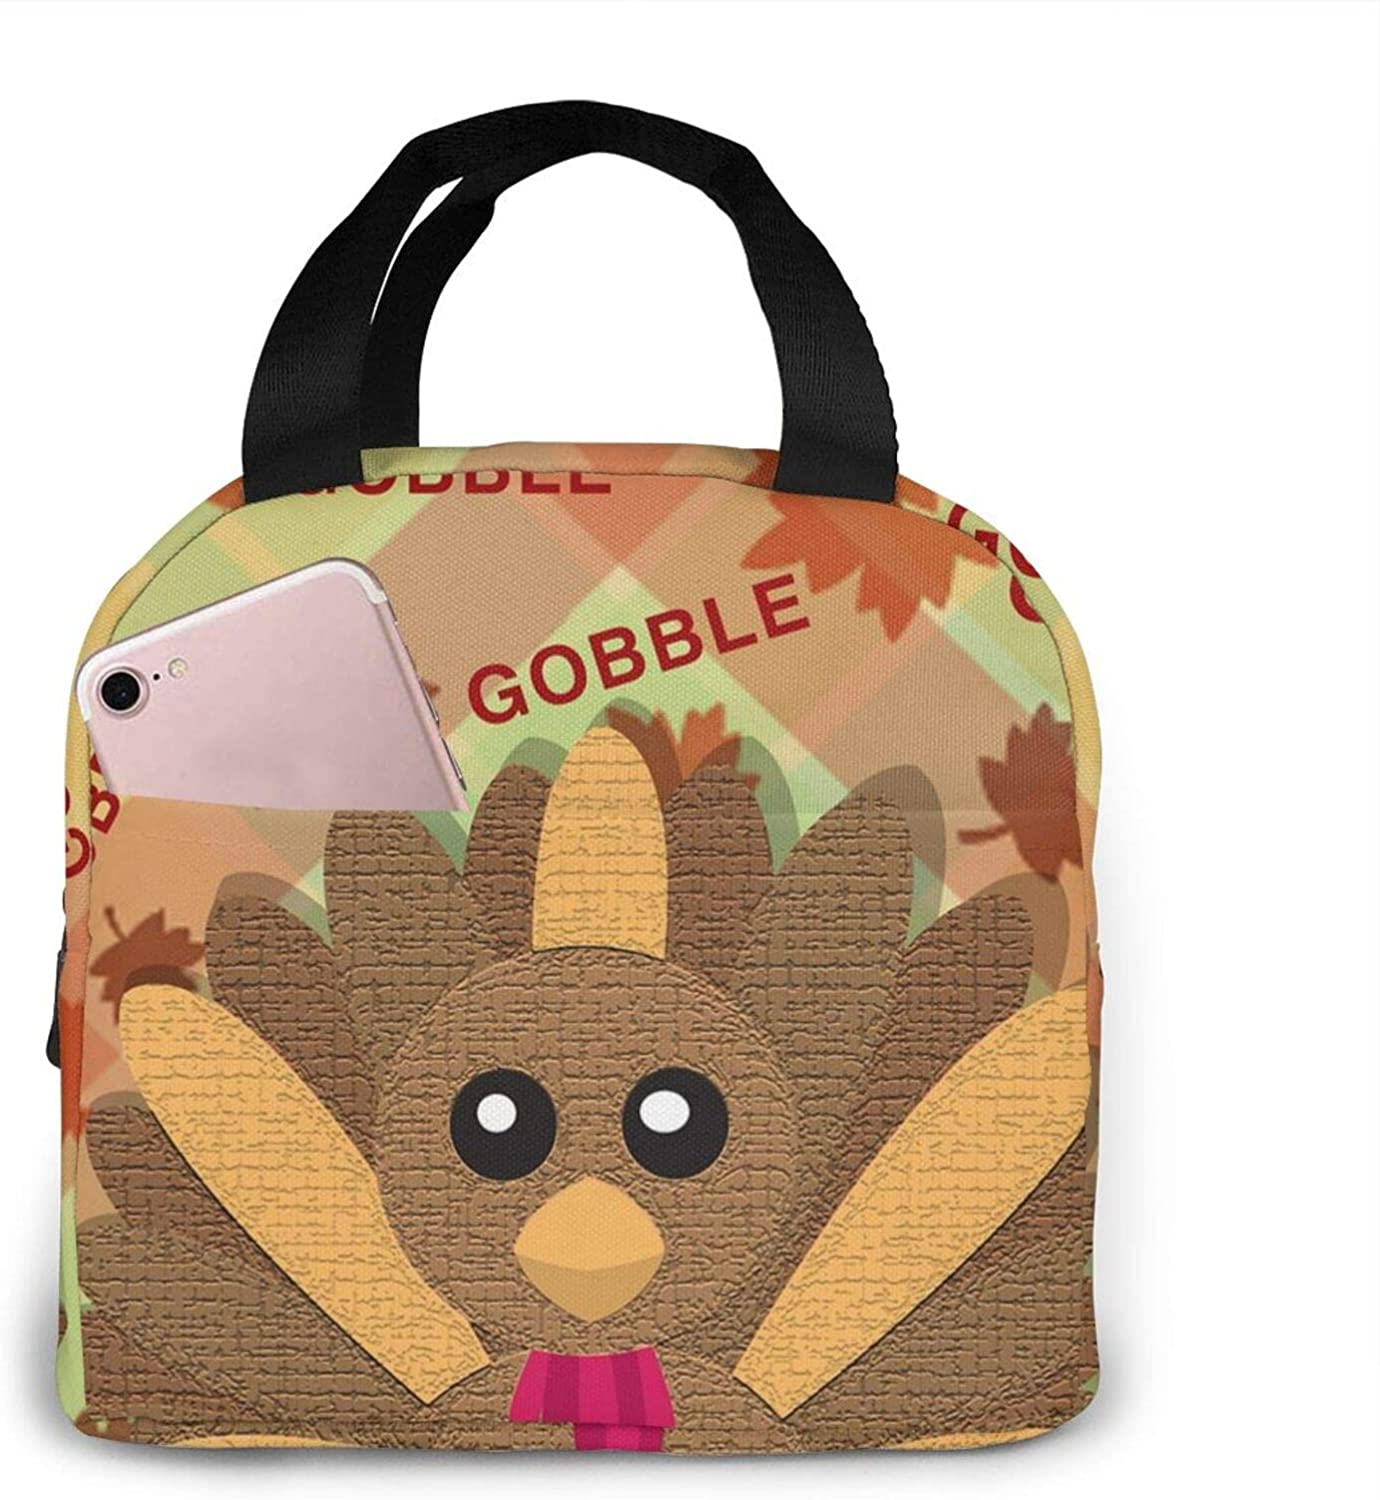 Leakproof Insulated Lunch Tote Bag Happy Thanksgiving Gobble Lunch Bag Waterproof Reusable Food Cooler Bag Portable Lunch Box for Women Men Kids